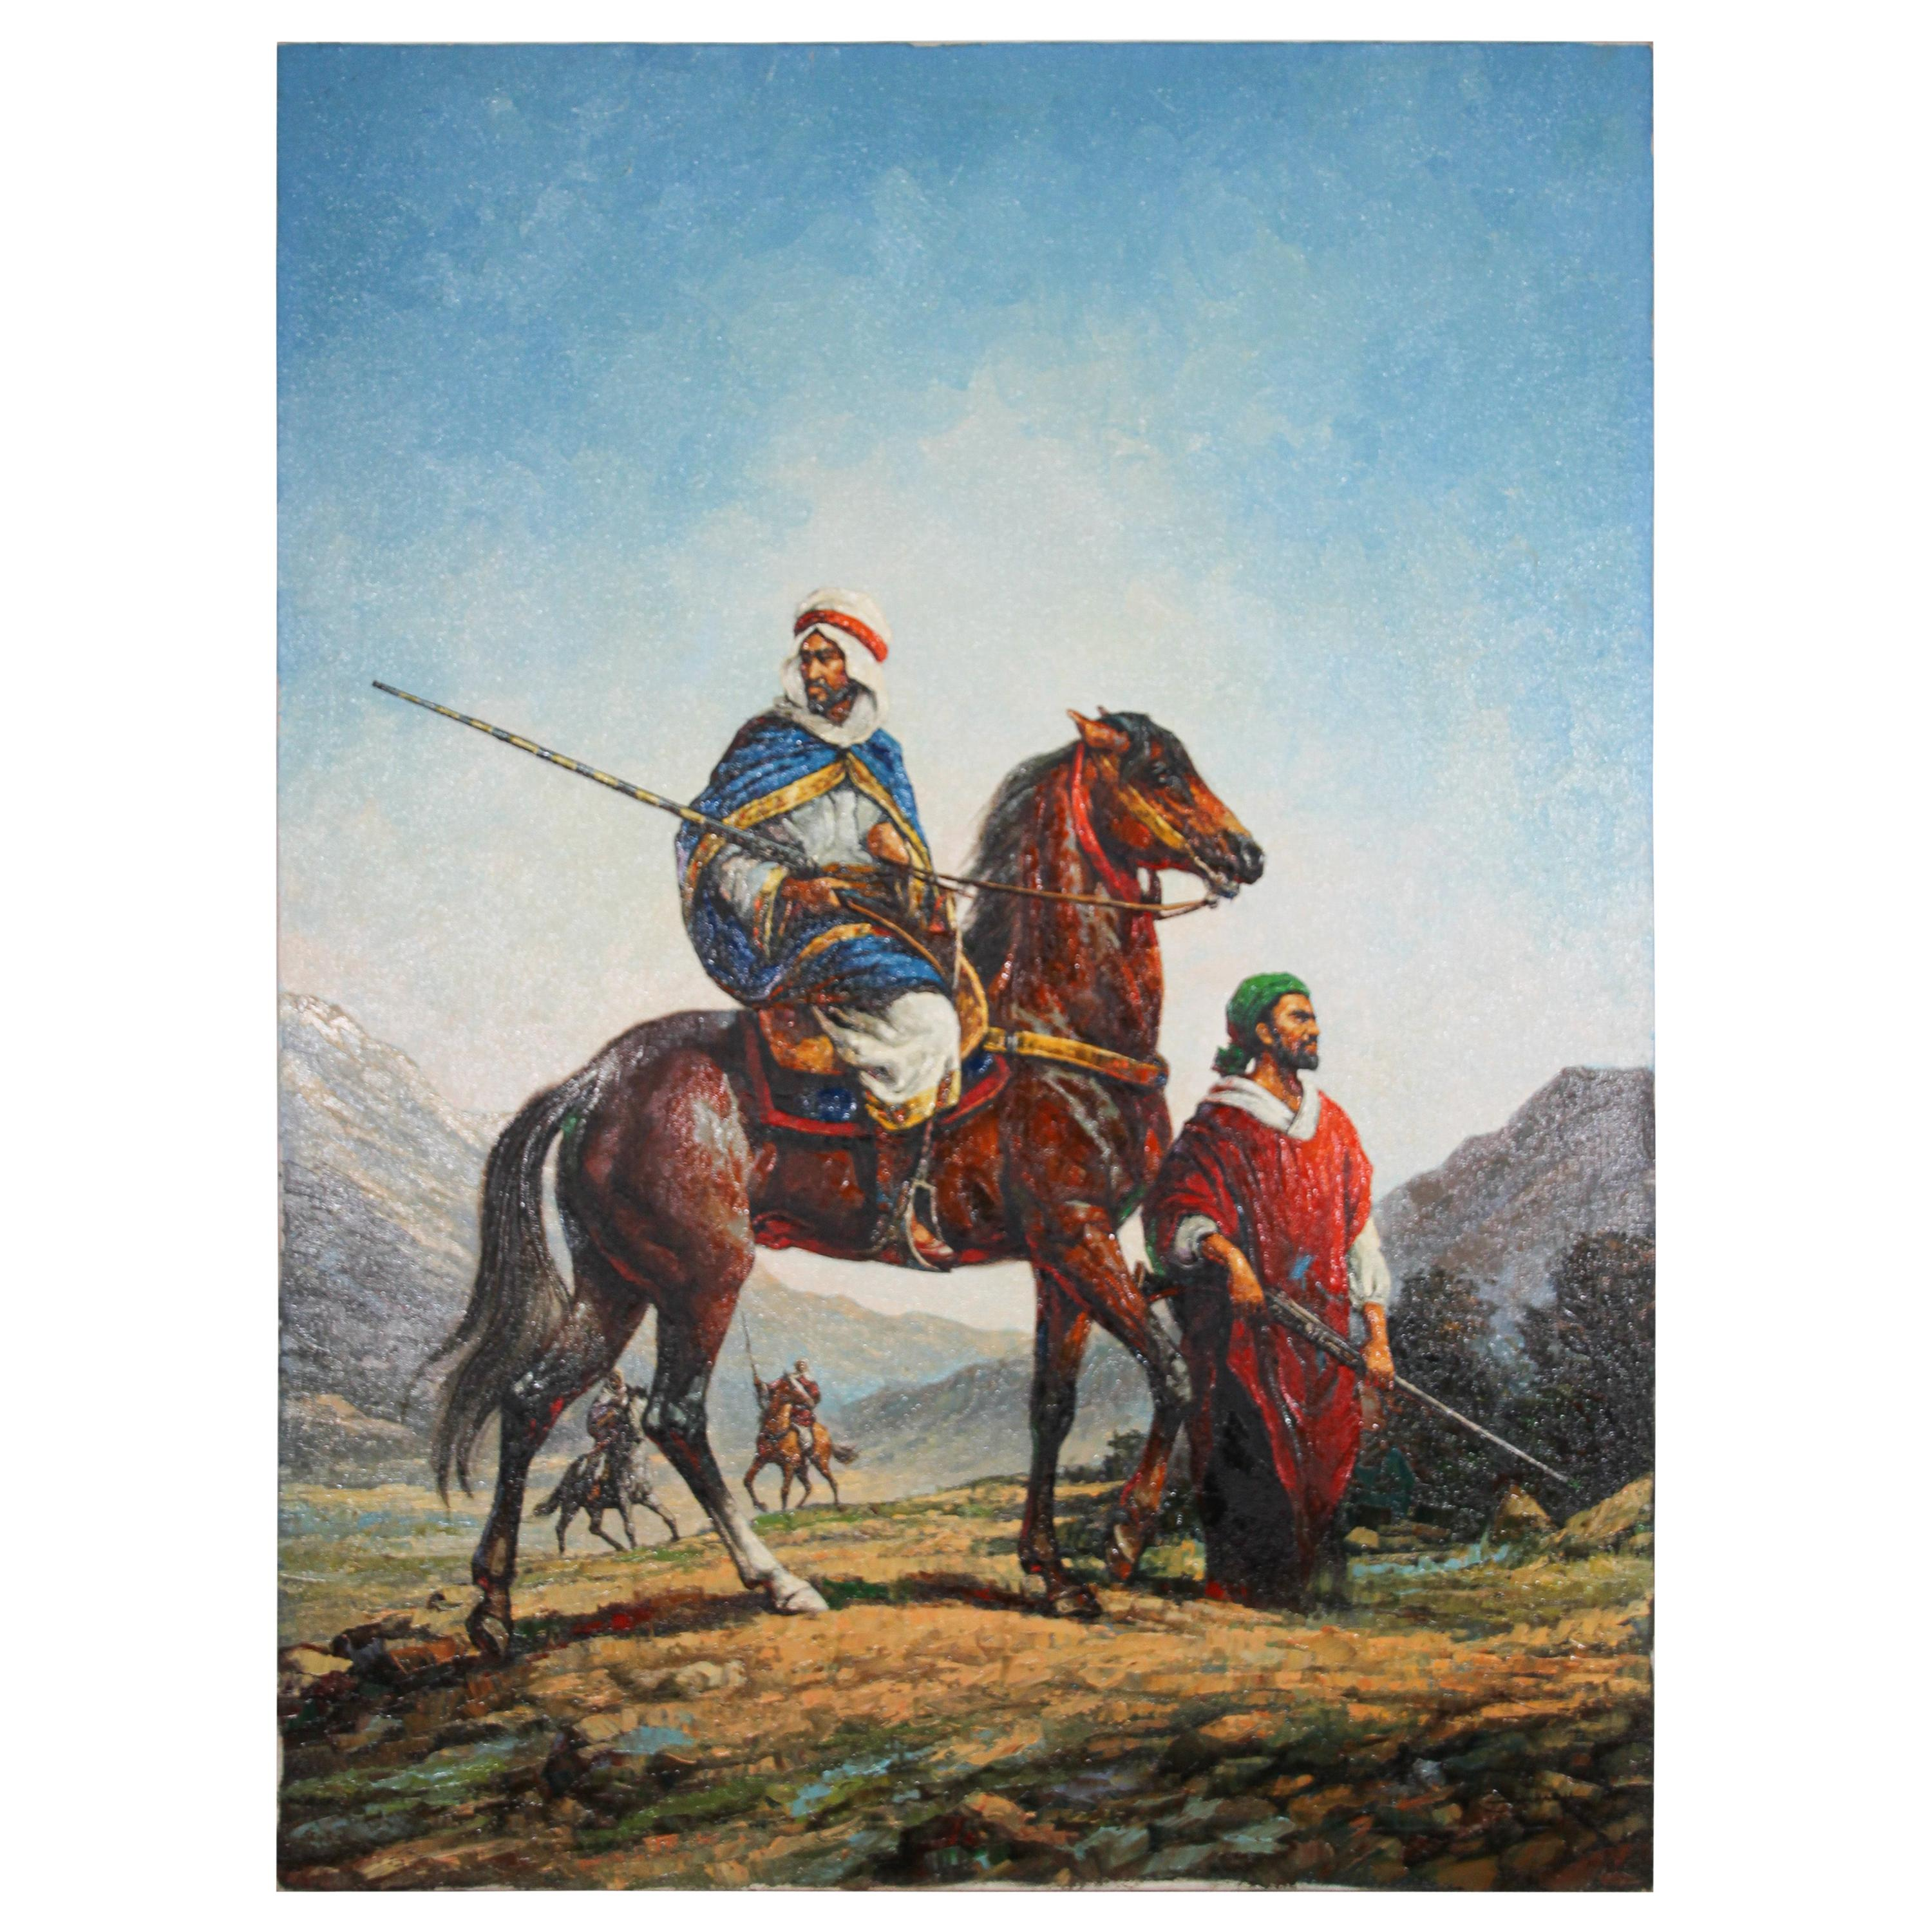 Moroccan Orientalist Oil Painting of Men on Horses